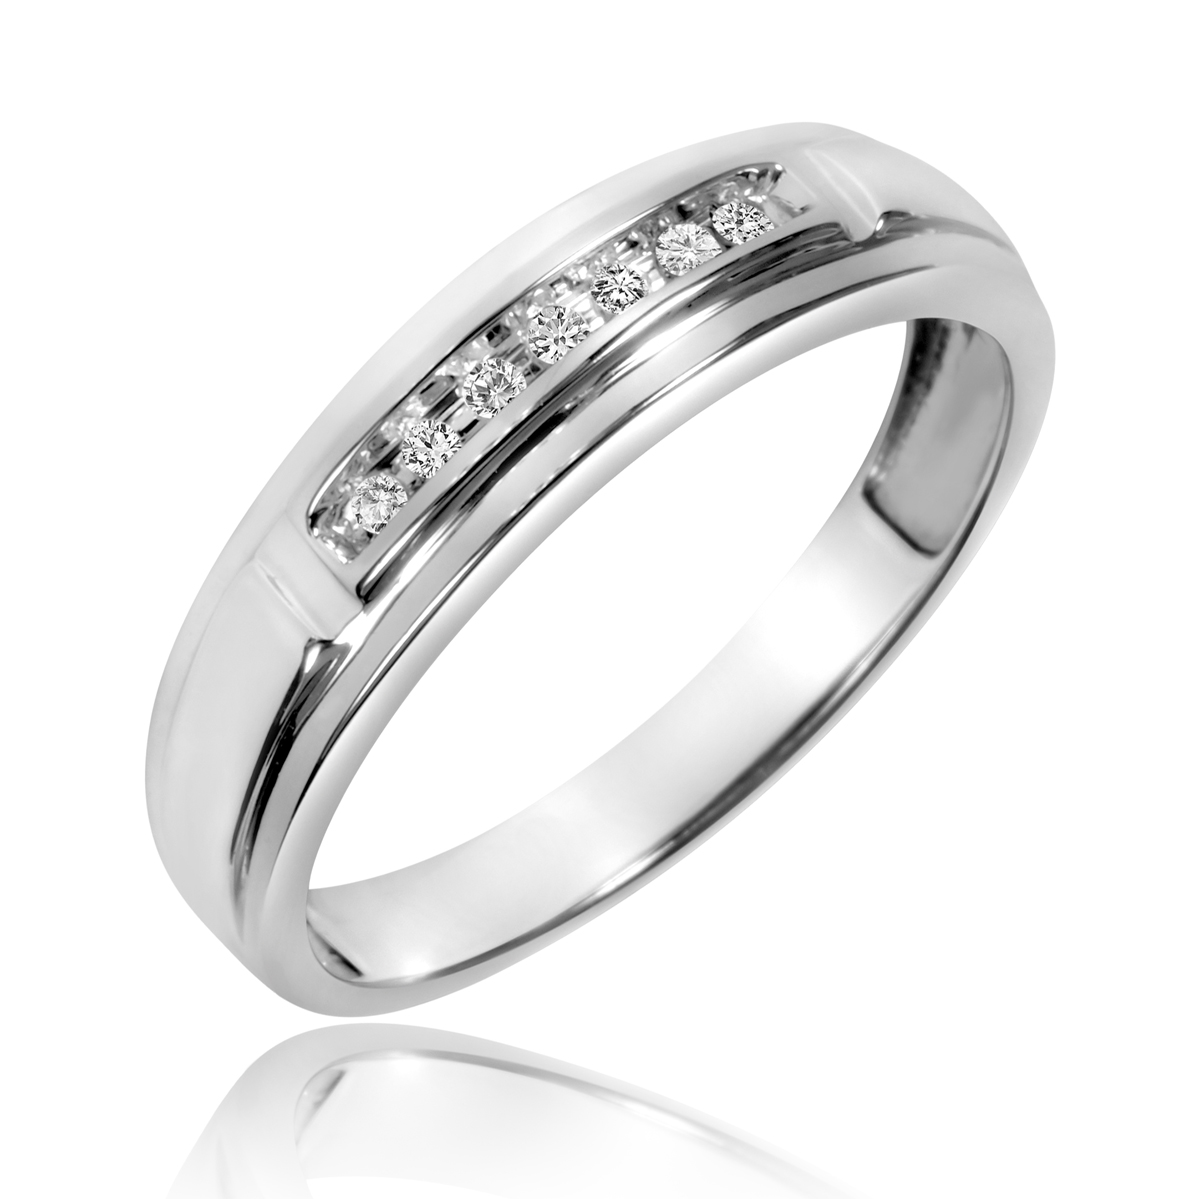 gold mens wedding band 14K 18K White or Yellow Gold Hammered Finish